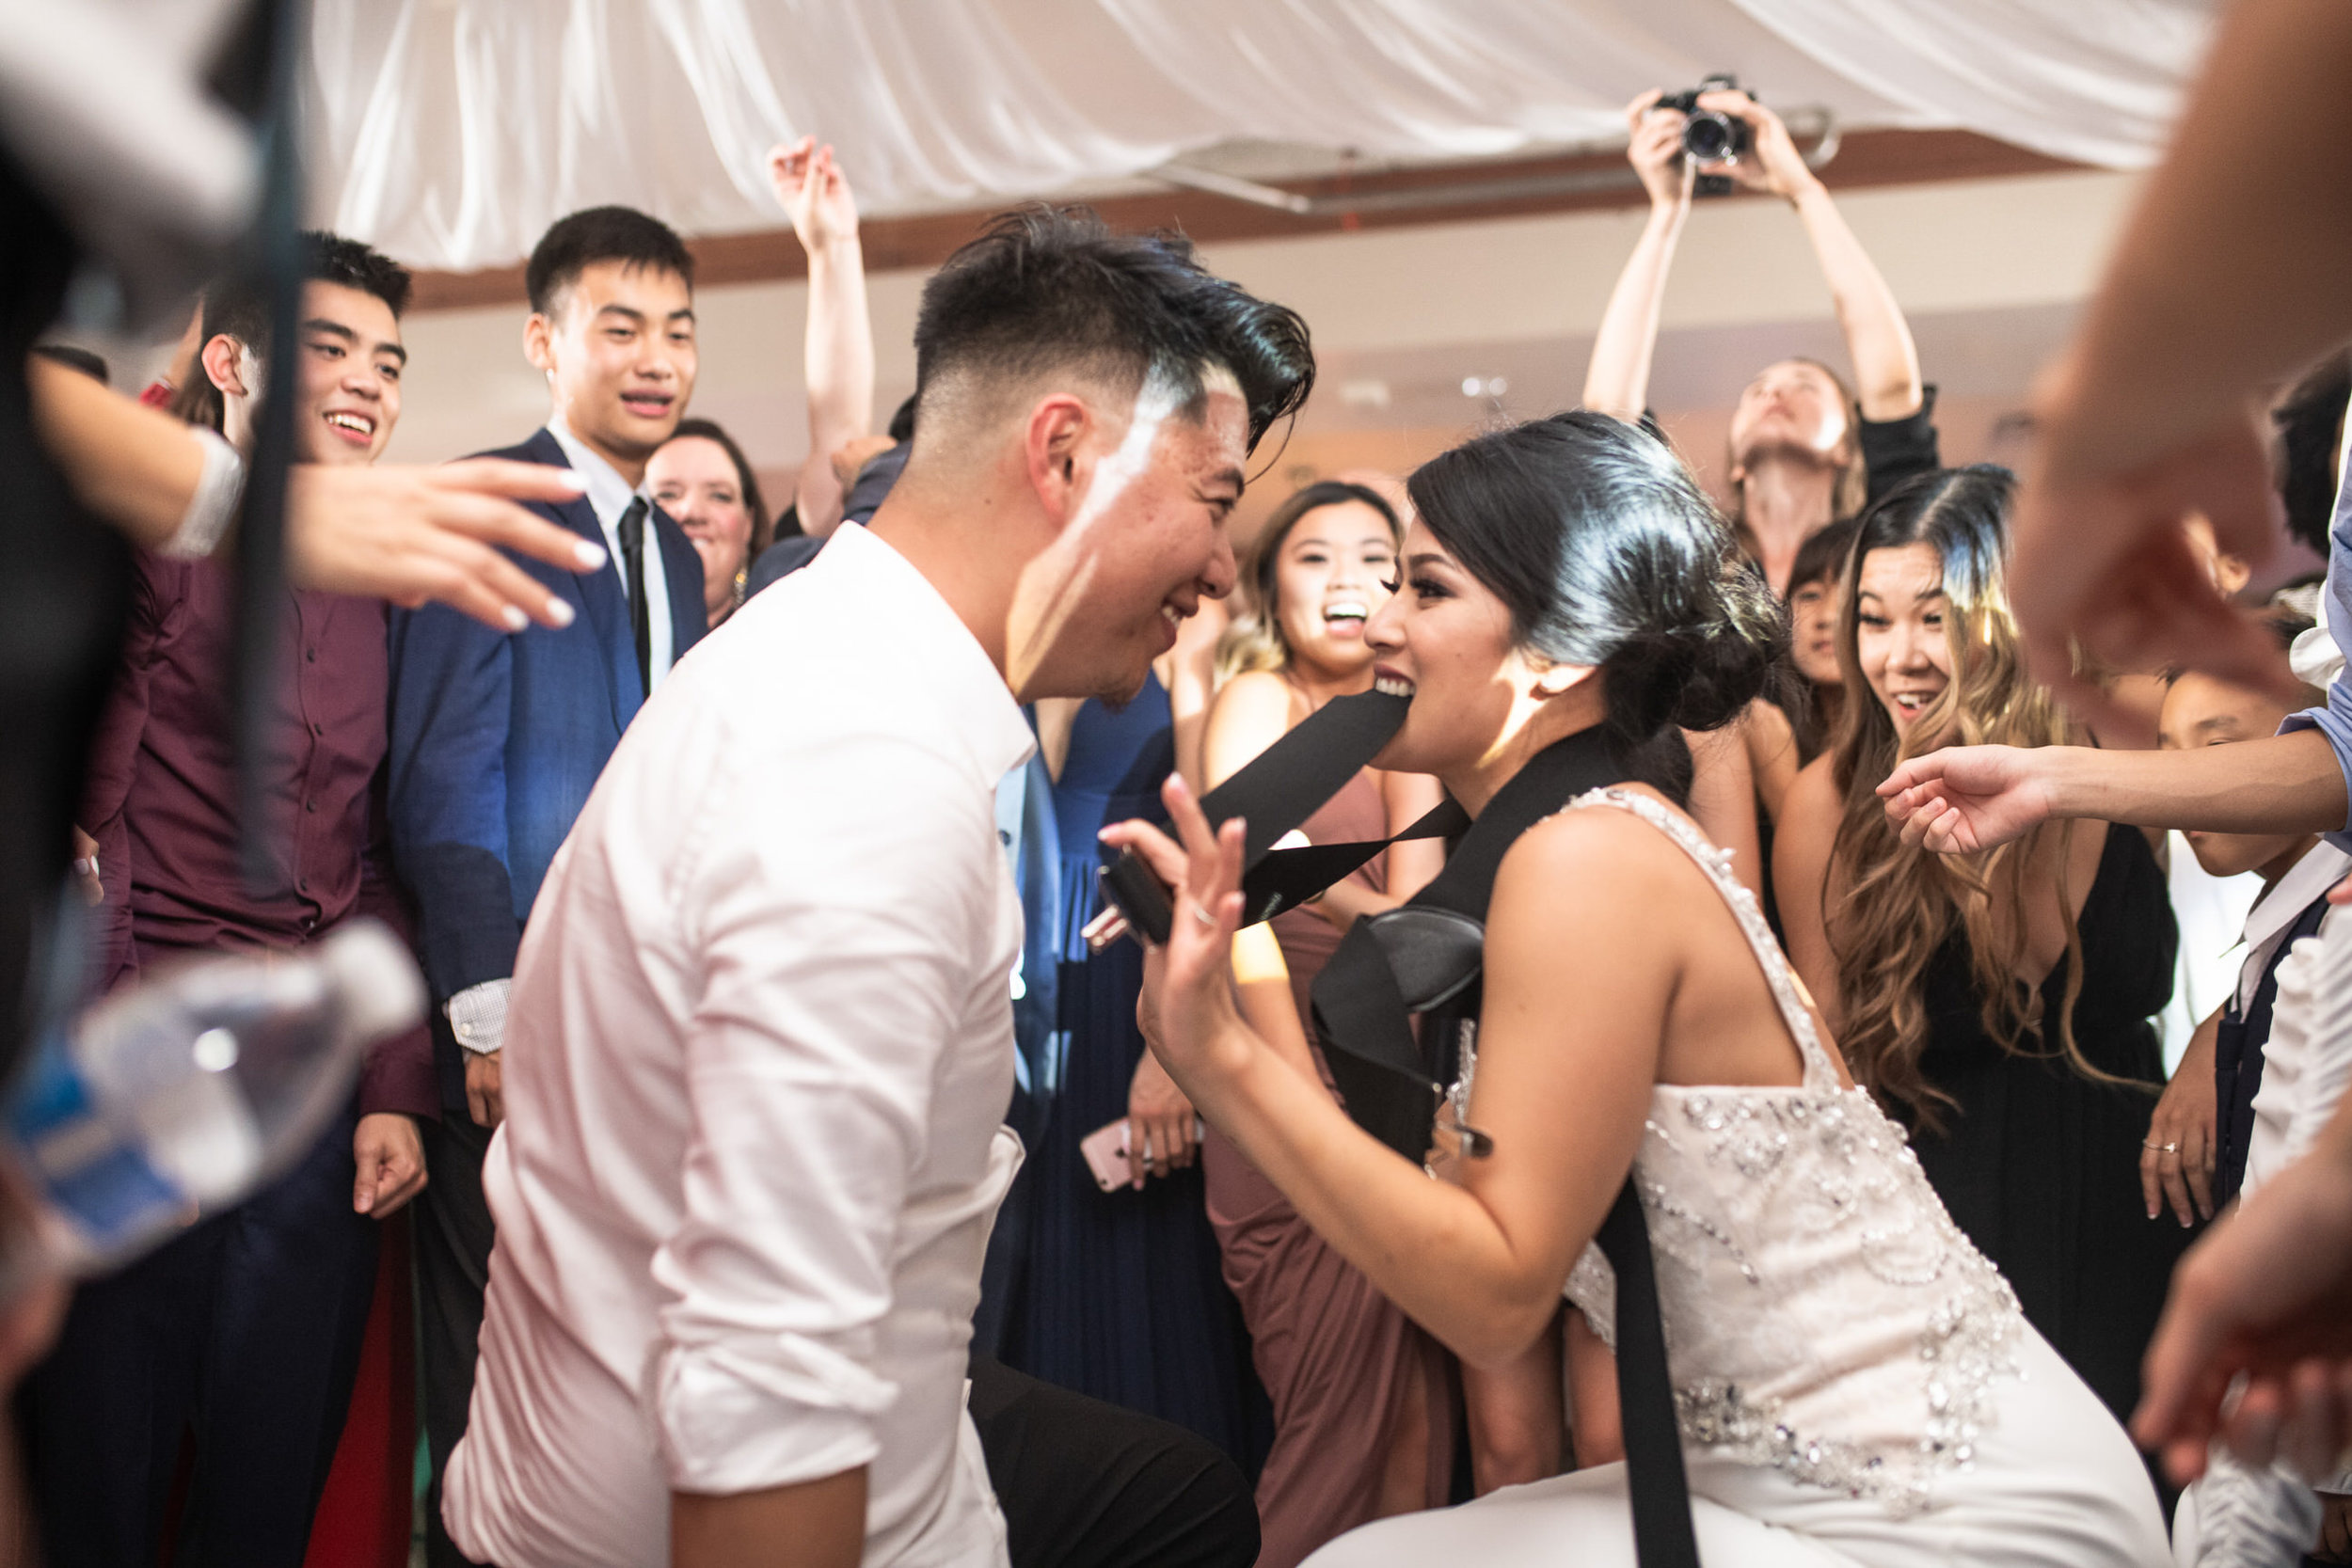 Dream_Wedding_Thanh_Thanh-3540.jpg